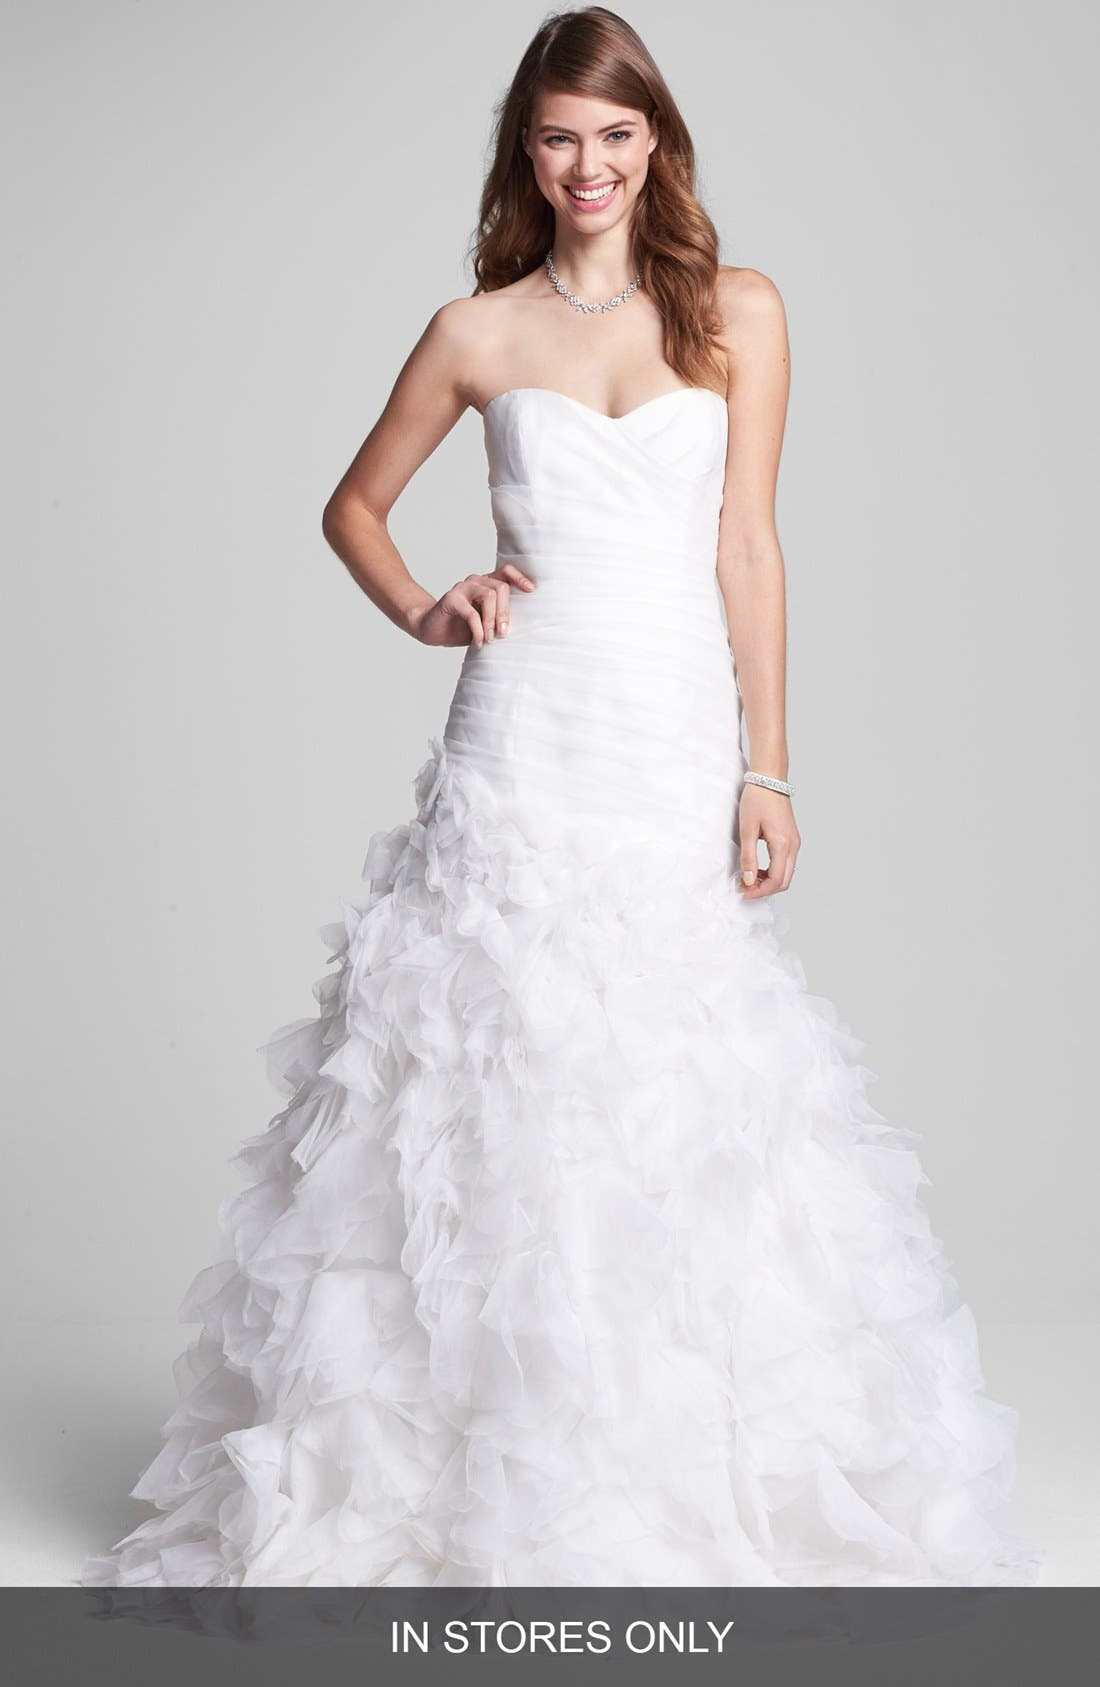 Main Image - BLISS Monique Lhuillier Ruffled Organza Mermaid Dress (In Stores Only)